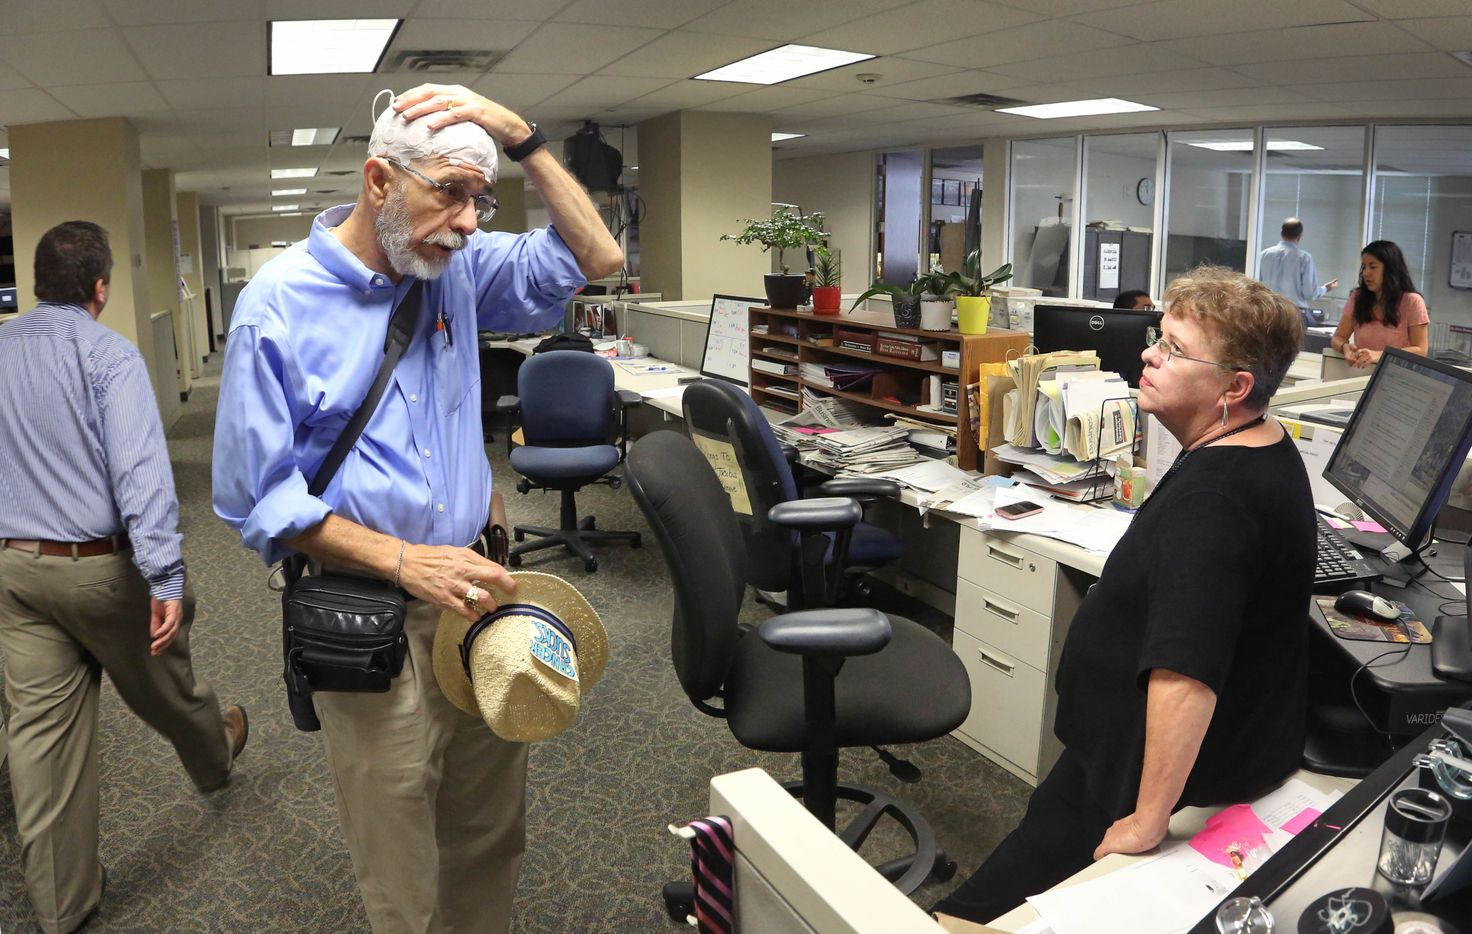 Jeffrey Weiss talks with Laura Jacobus, one of the business editors at The Dallas Morning News, about his treatments for brain cancer.